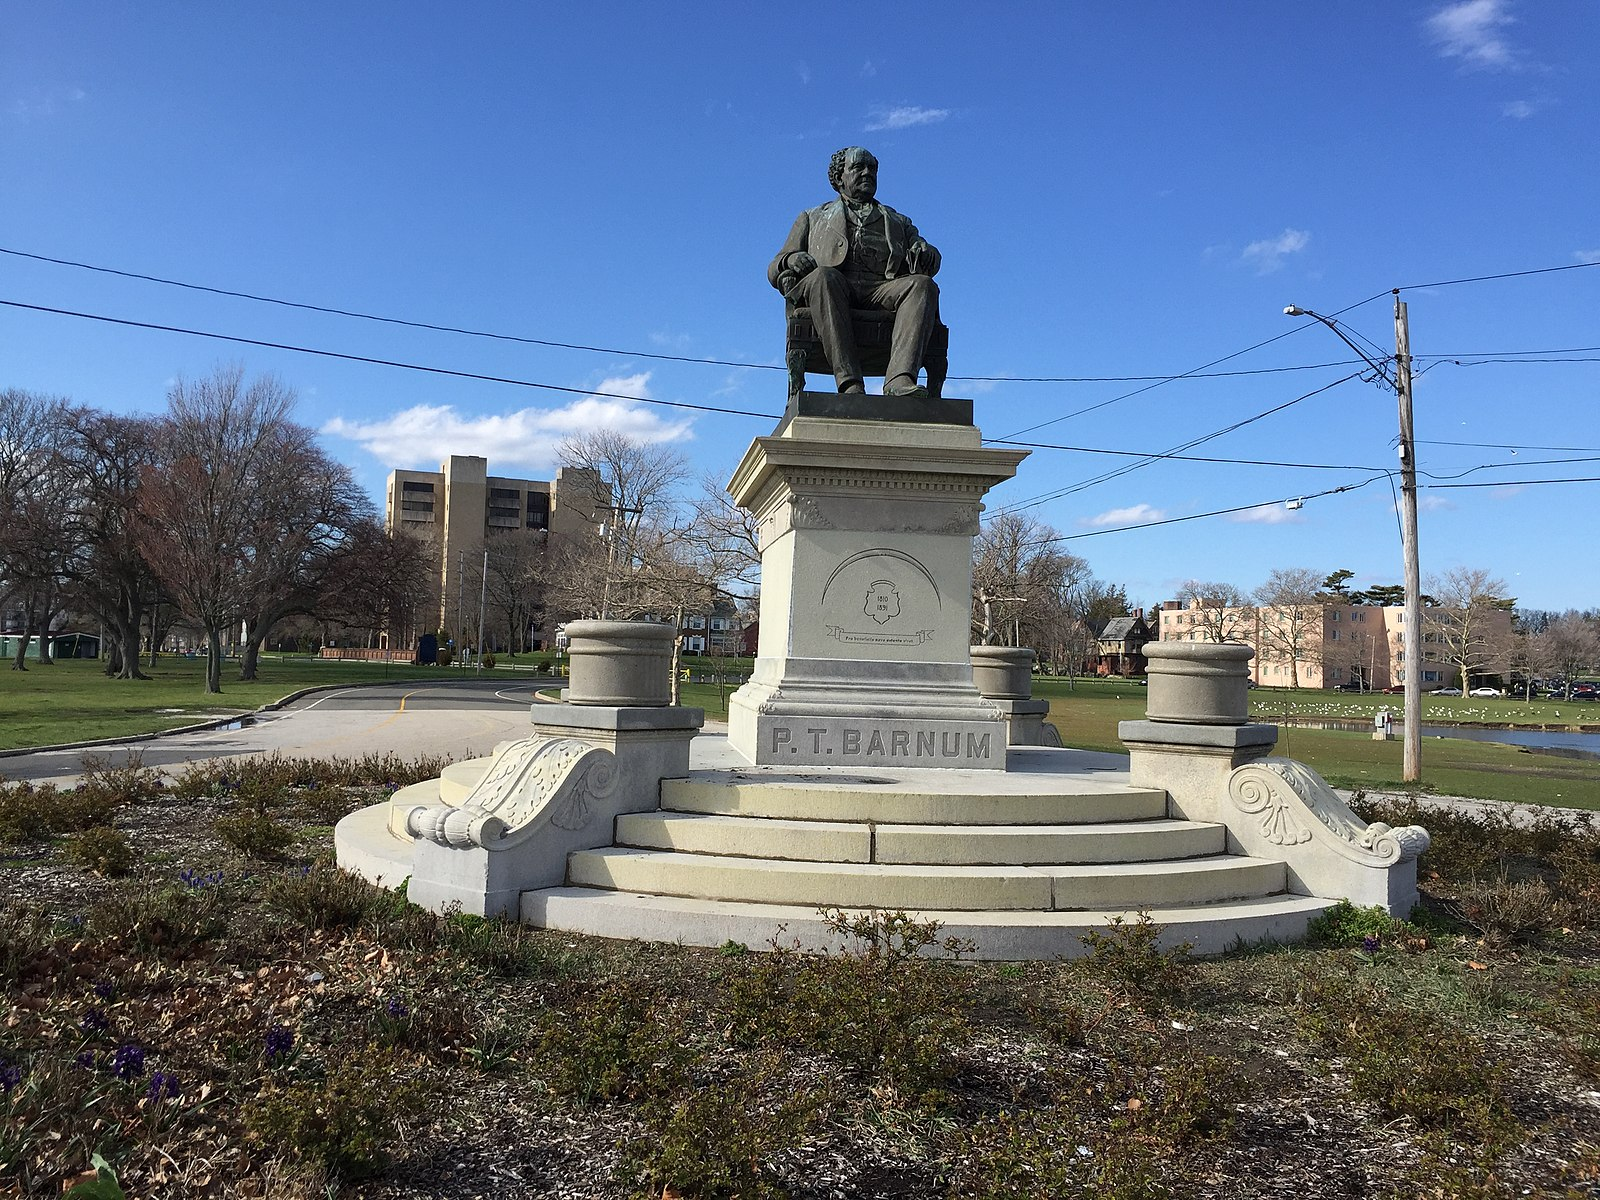 Statue of P.T. Barnum seating on a chair, placed on top of a column. There are stairs in front of the statue and grass around the area. In the background are some apartment buildings.